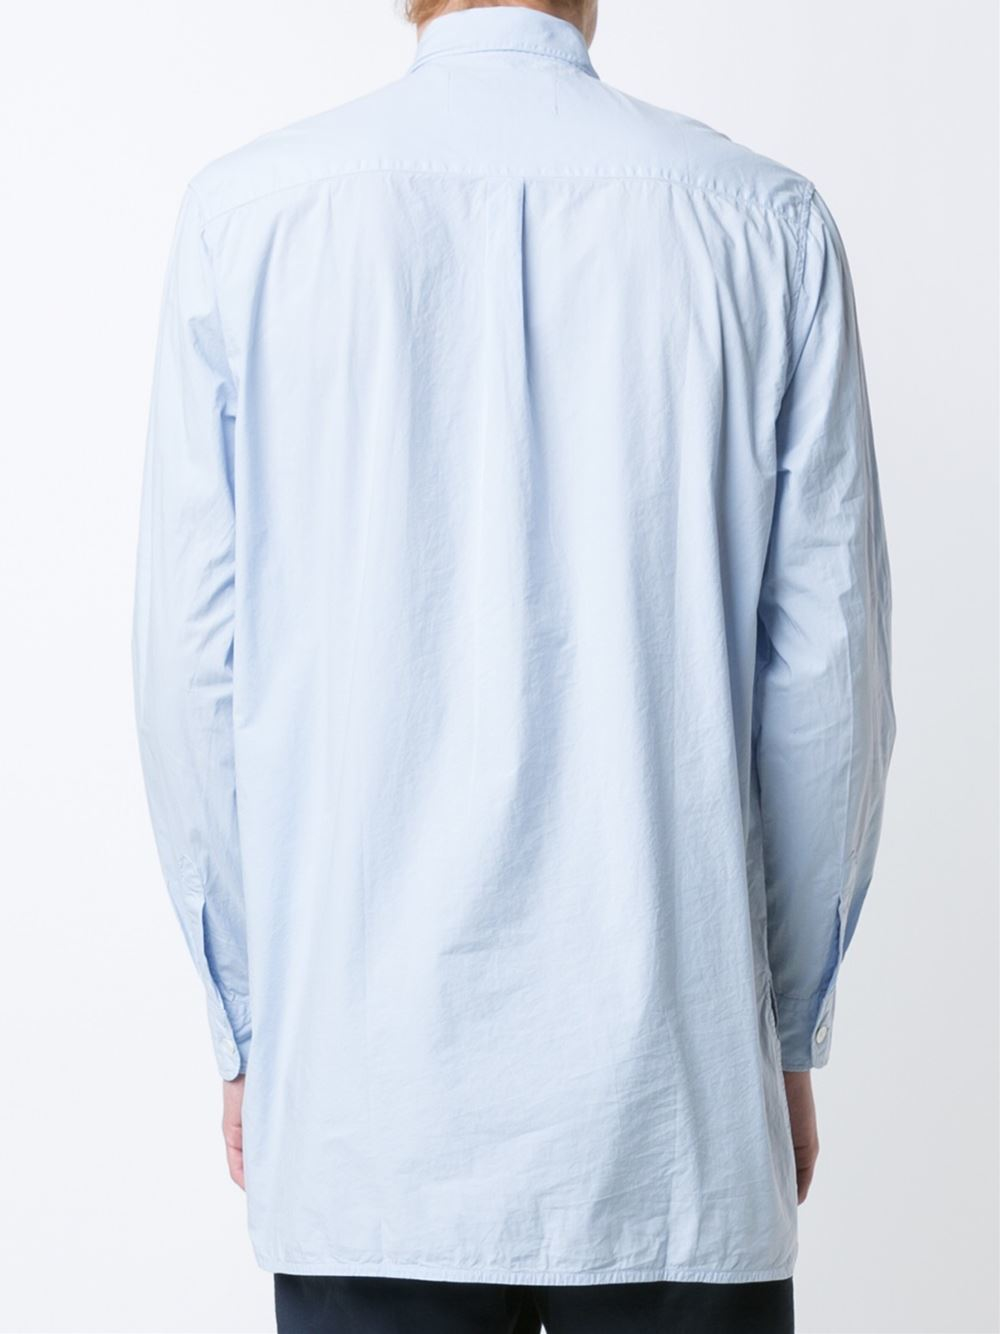 Best prices on Long tail shirt in Men's Shirts online. Visit Bizrate to find the best deals on top brands. Read reviews on Clothing & Accessories merchants and buy with confidence.